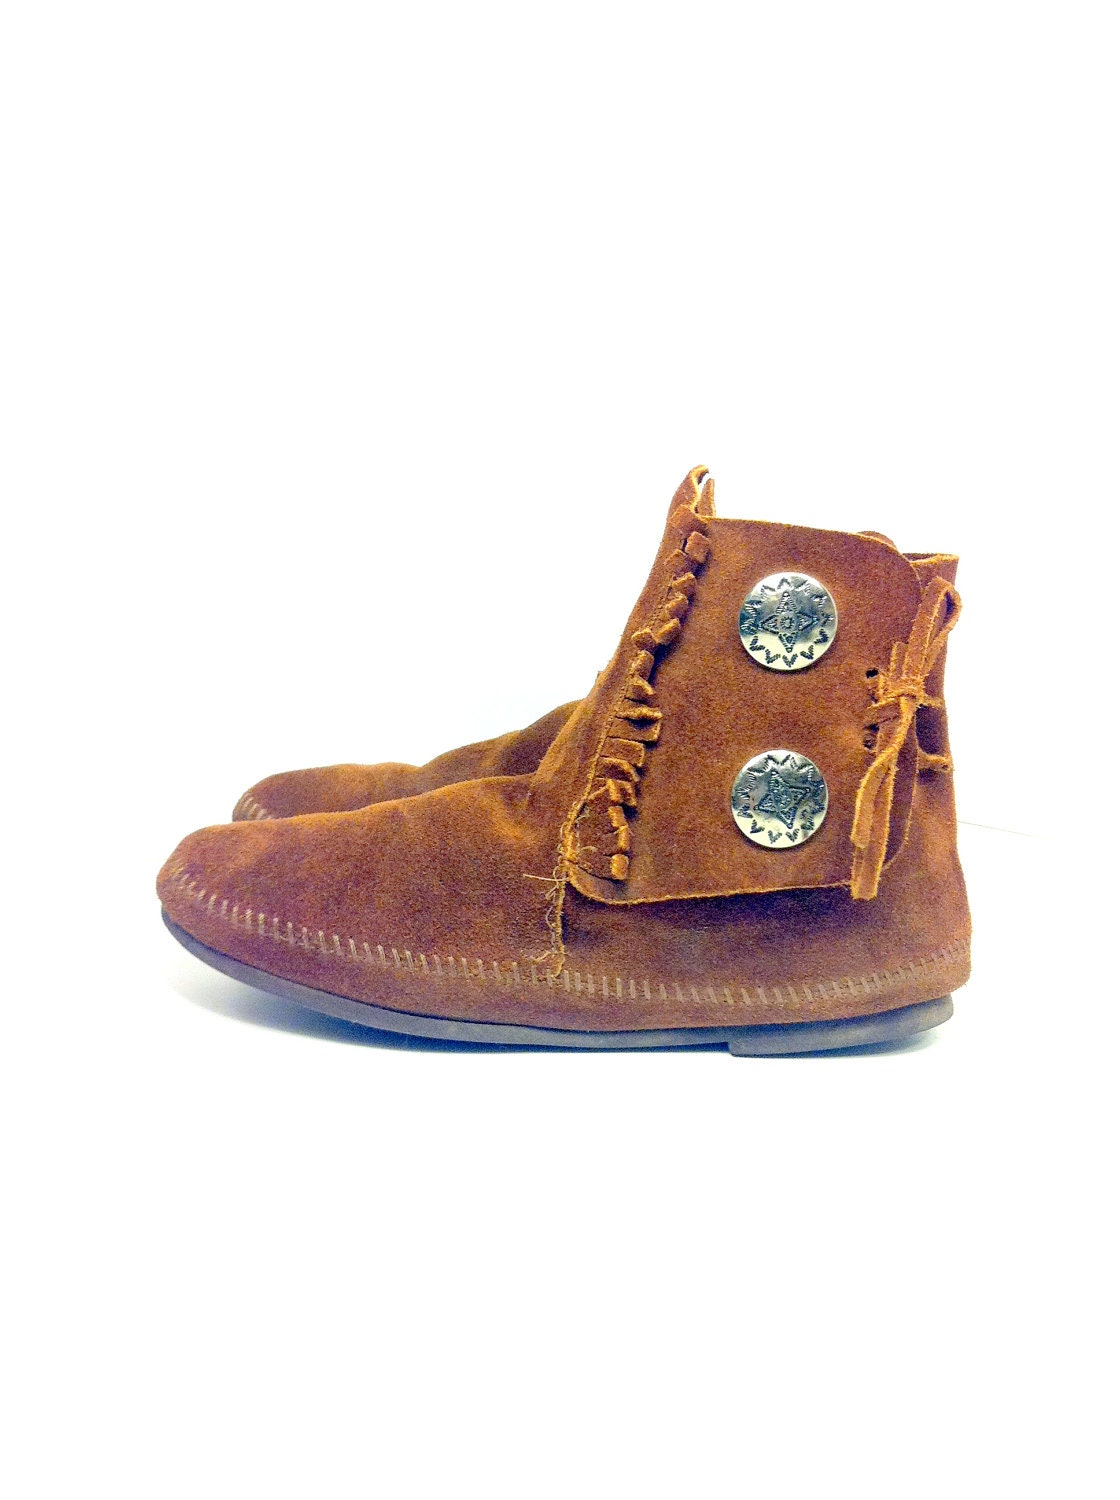 vintage mens leather moccasin boots 10 american